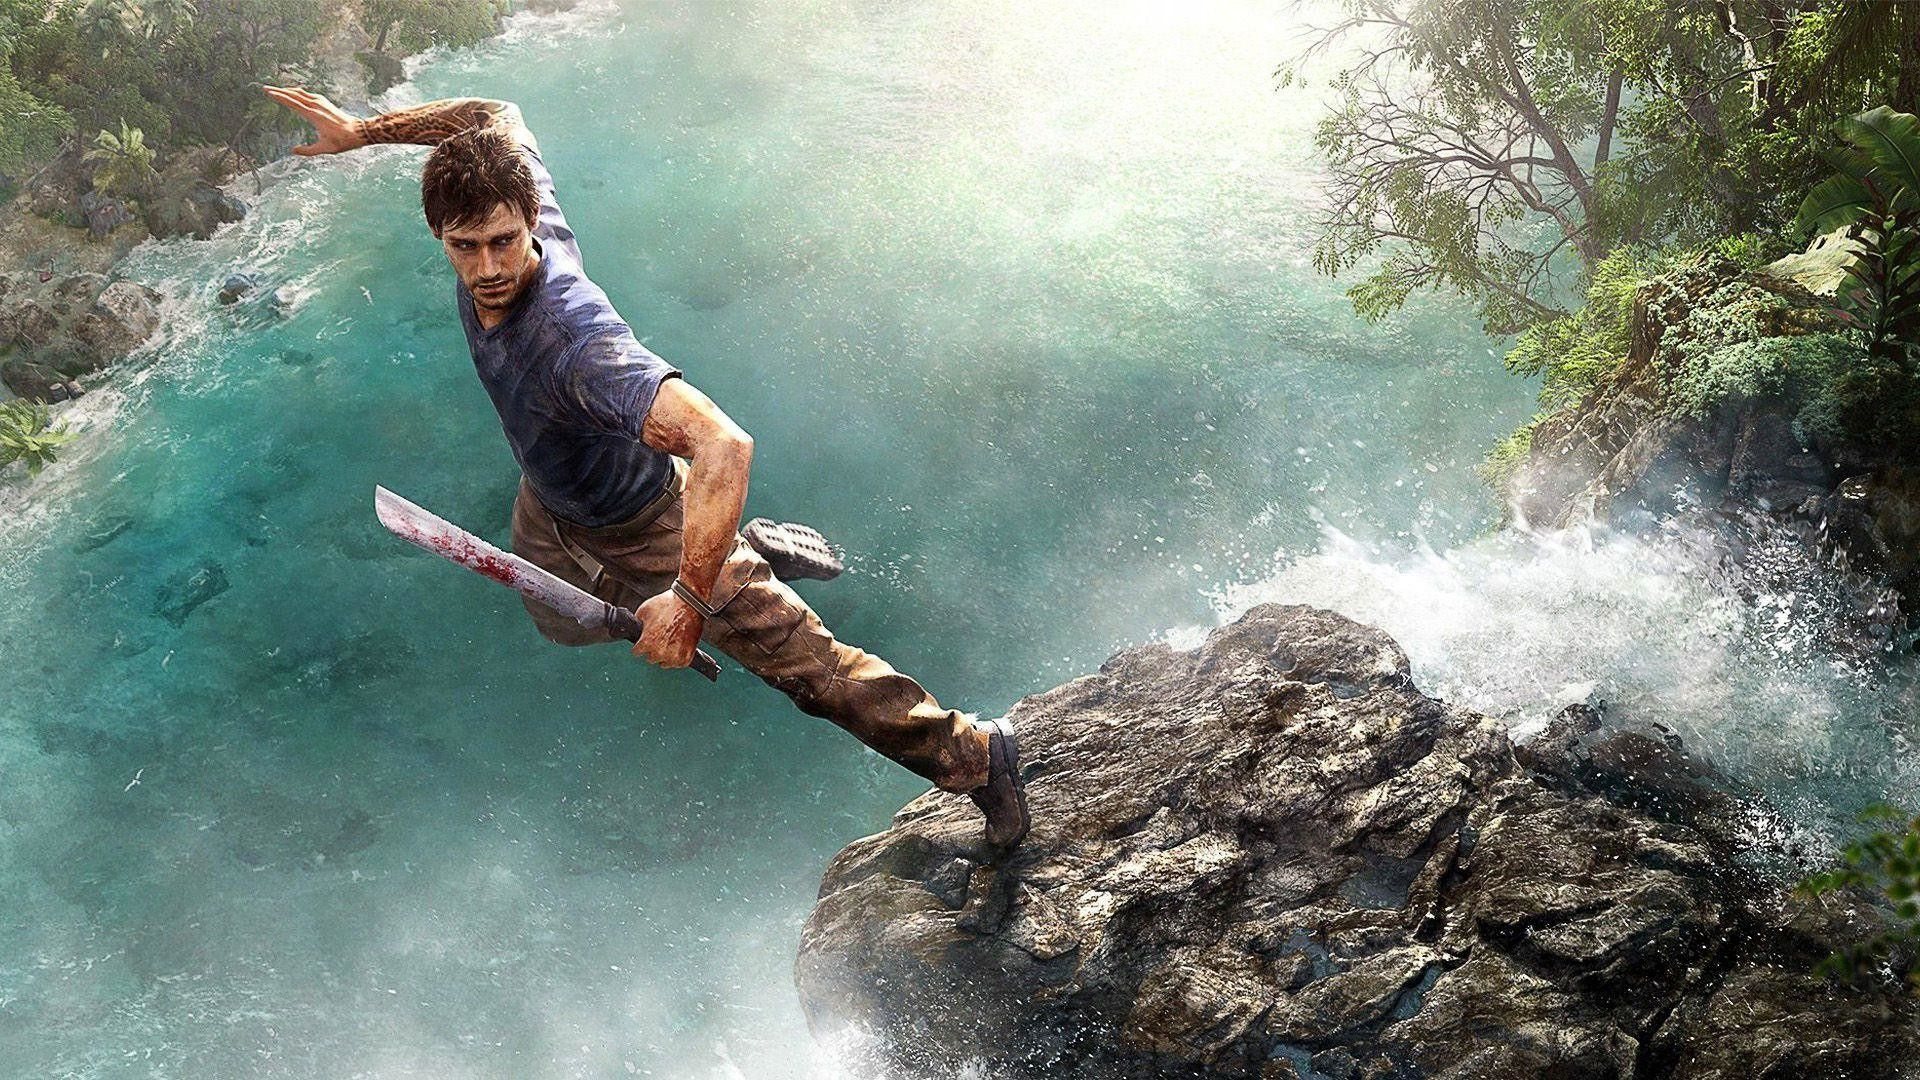 Far Cry 3 Wallpapers Top Free Far Cry 3 Backgrounds Wallpaperaccess